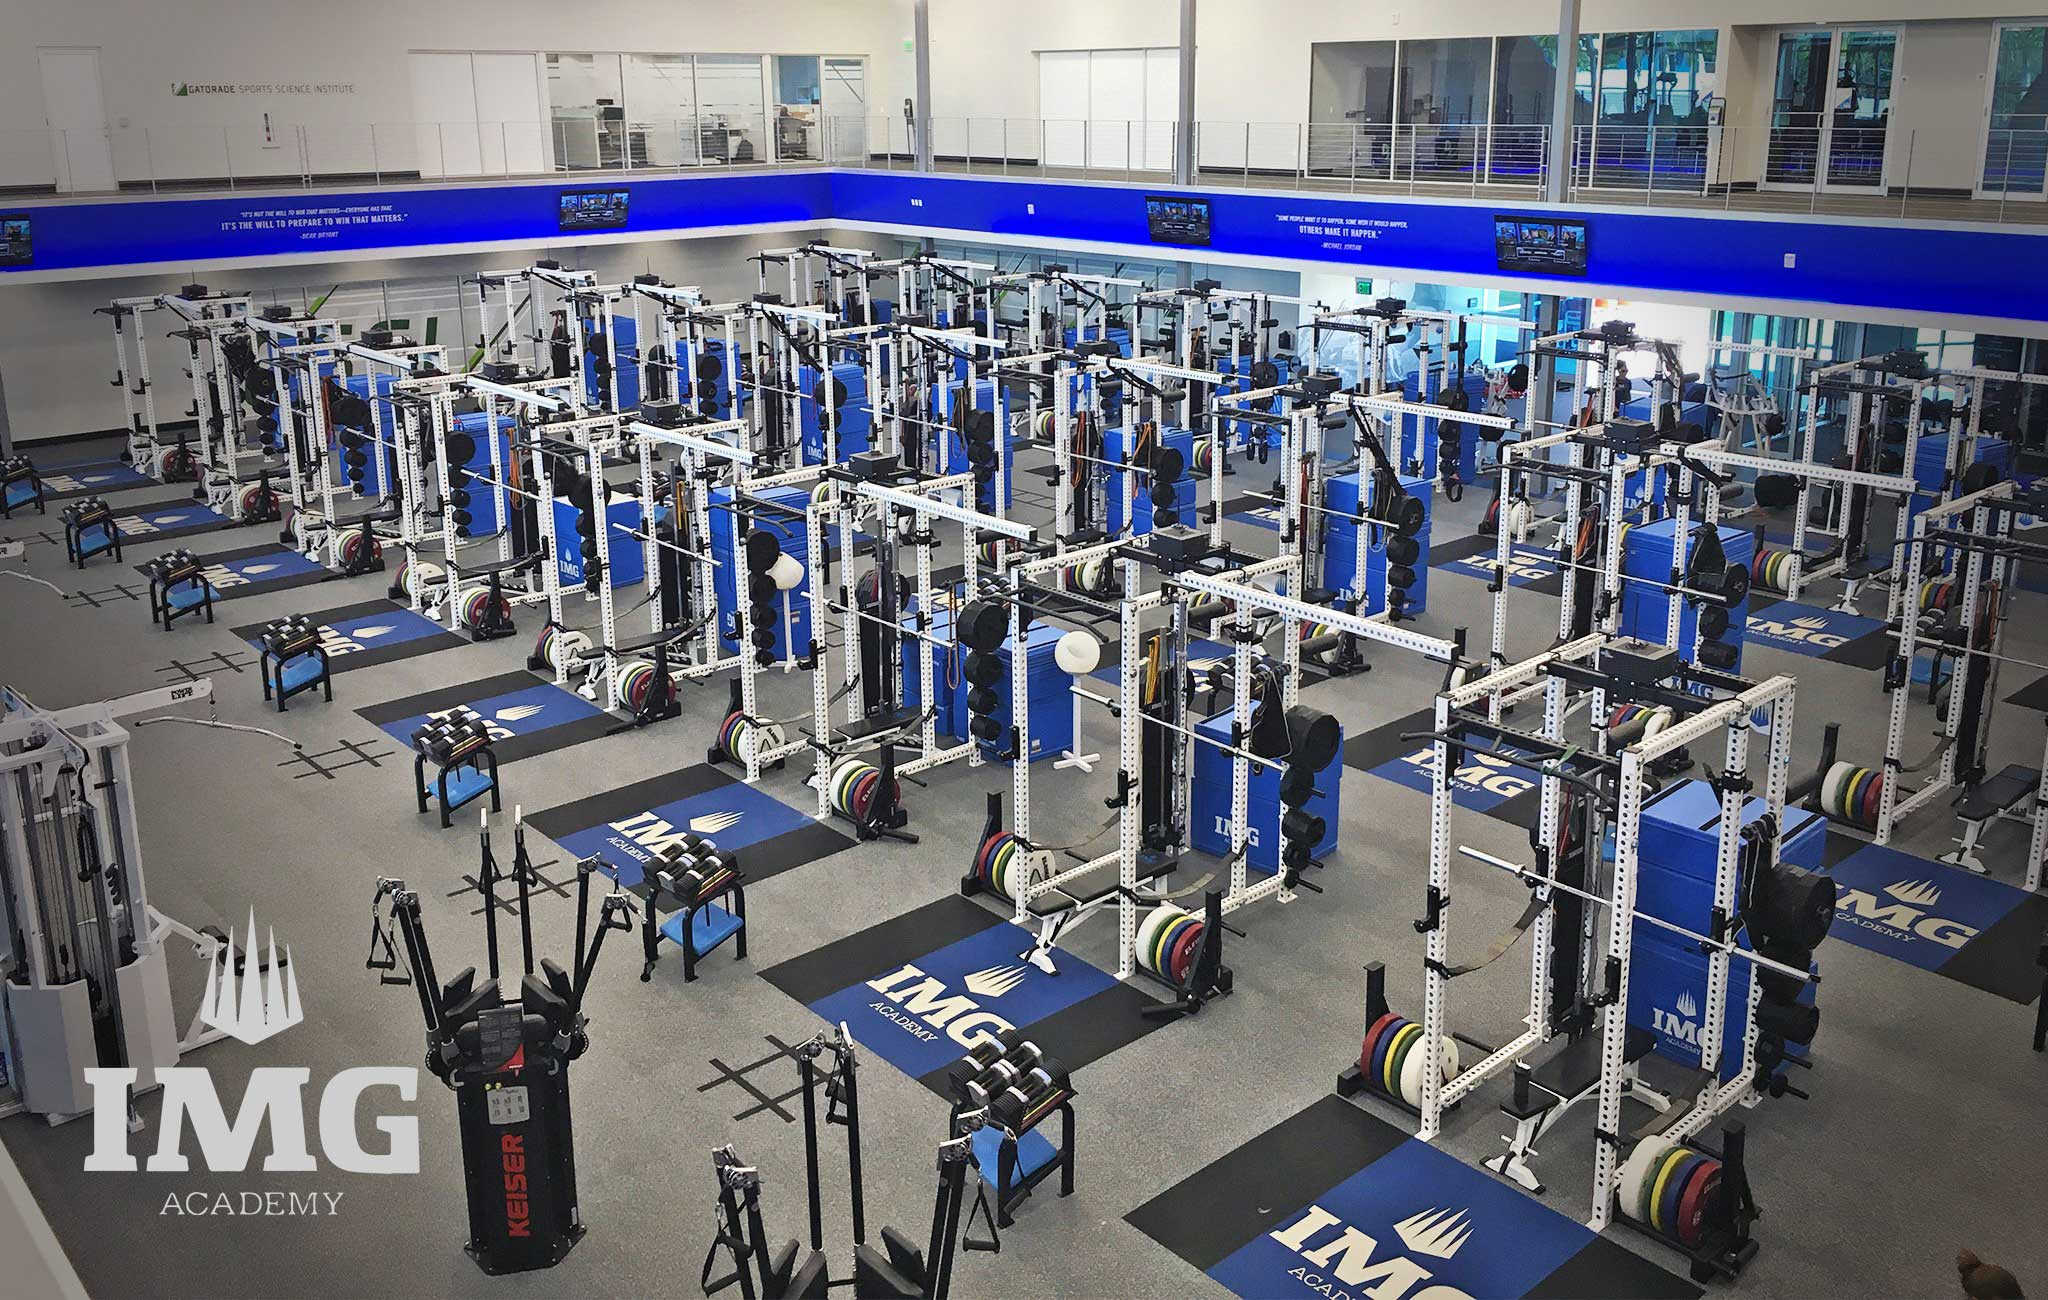 IMG Academy Sorinex strength and conditioning facility